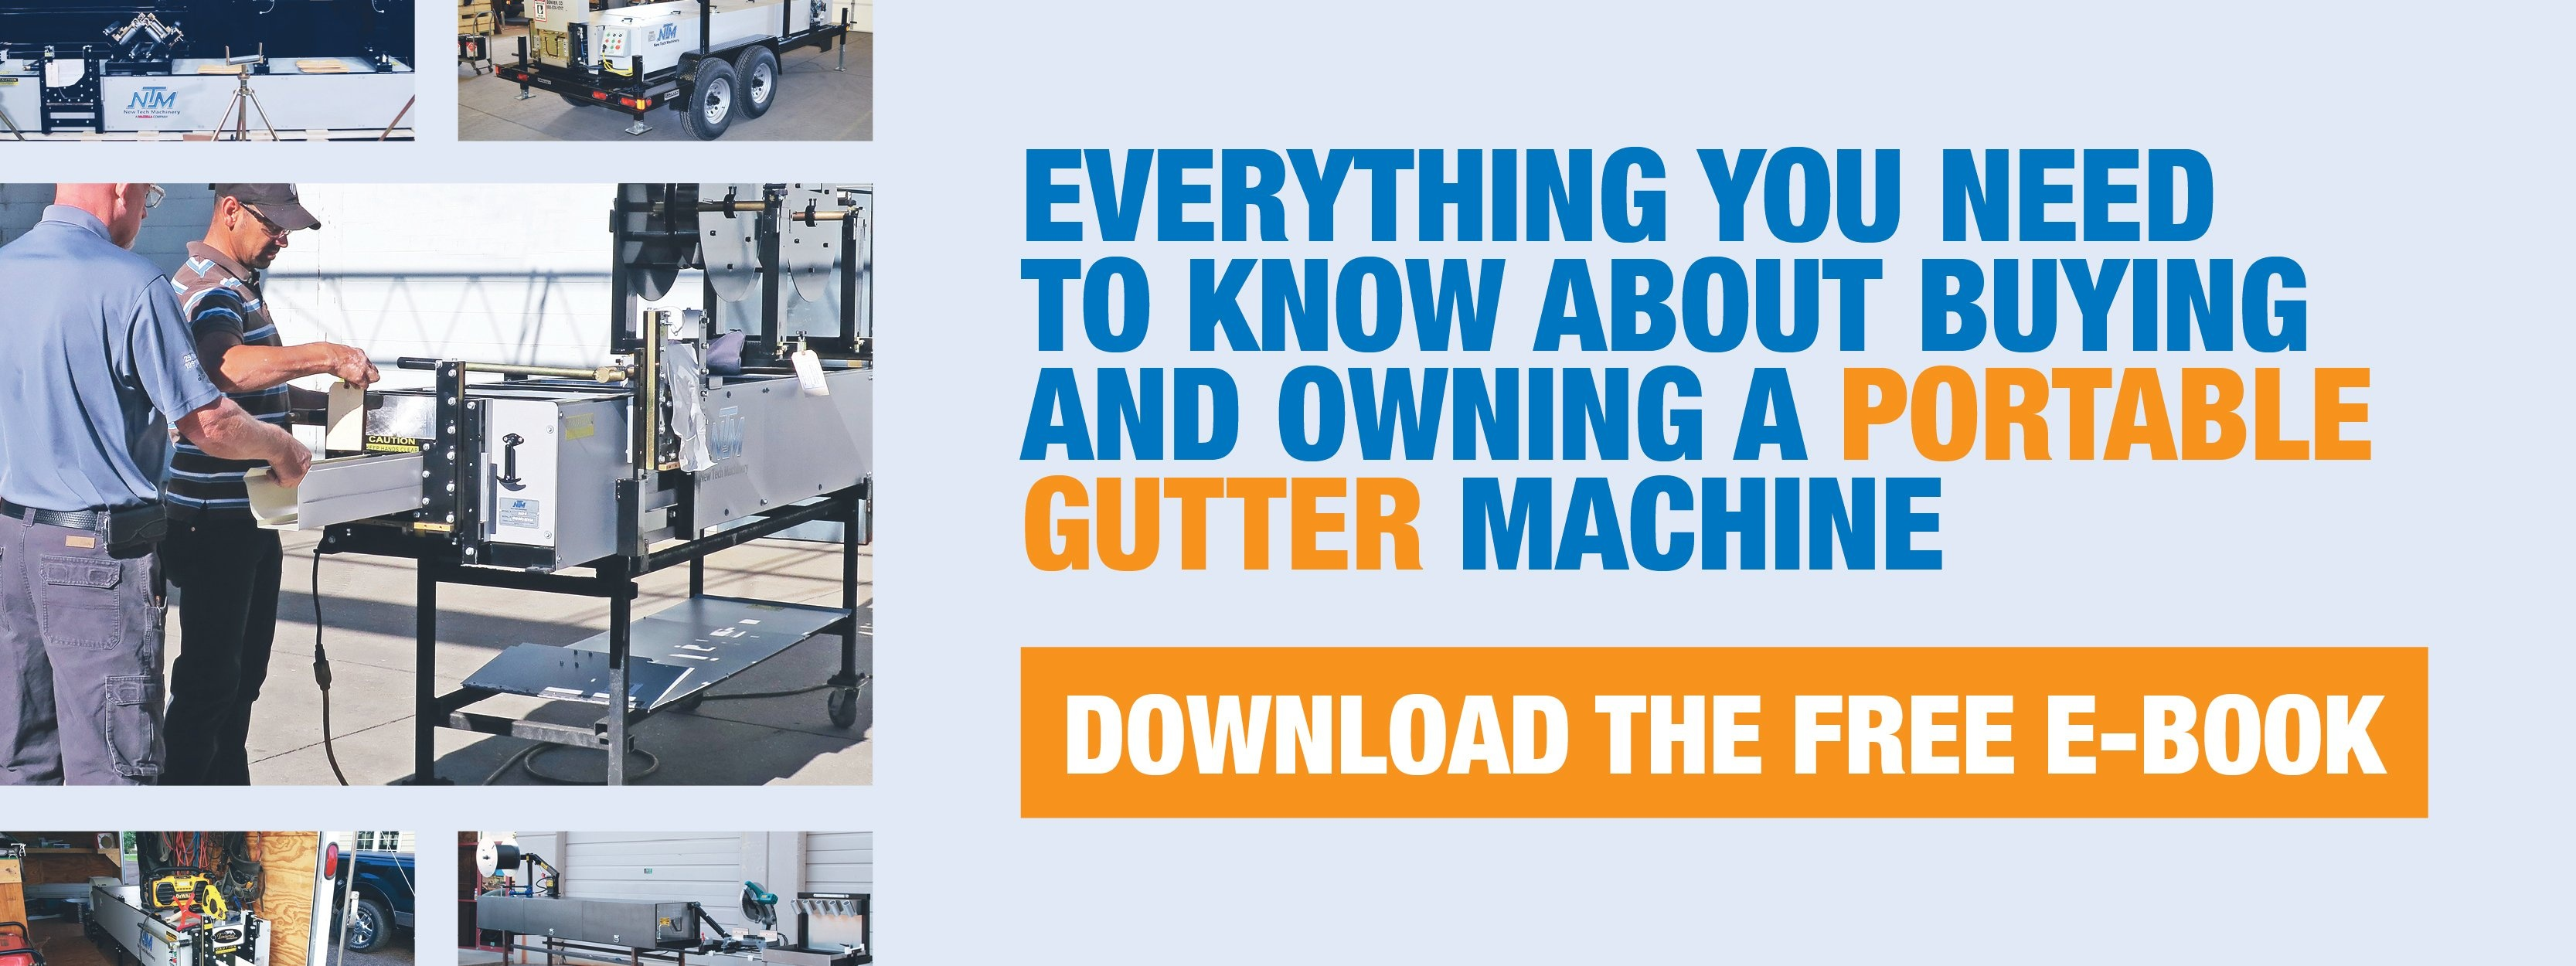 Download the free e-book about buying and owning a portable gutter machine